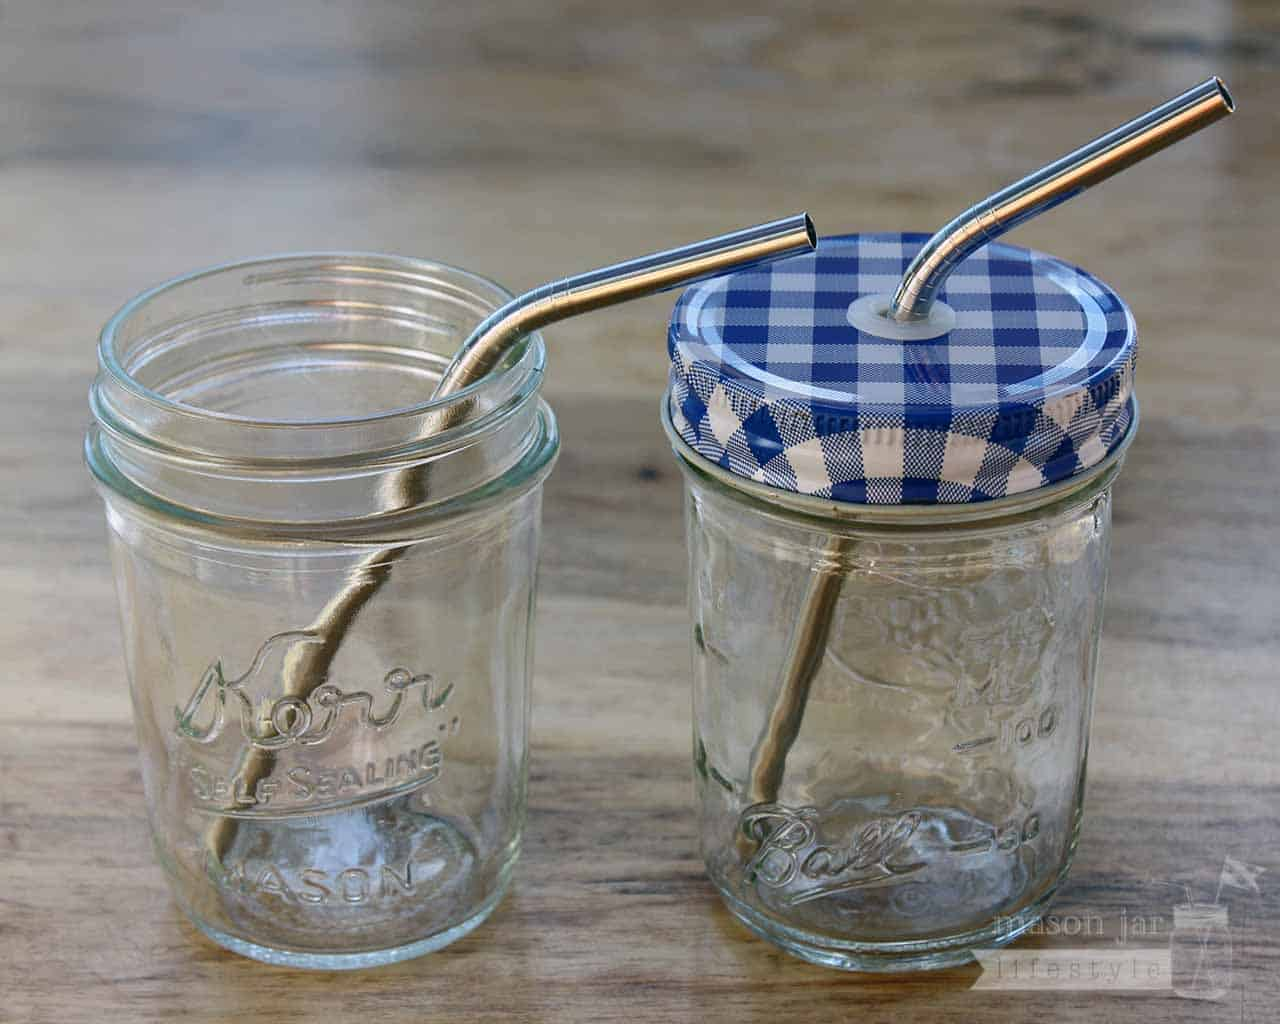 ... steel straws for half pint Mason jars, small cups, kids, and cocktails